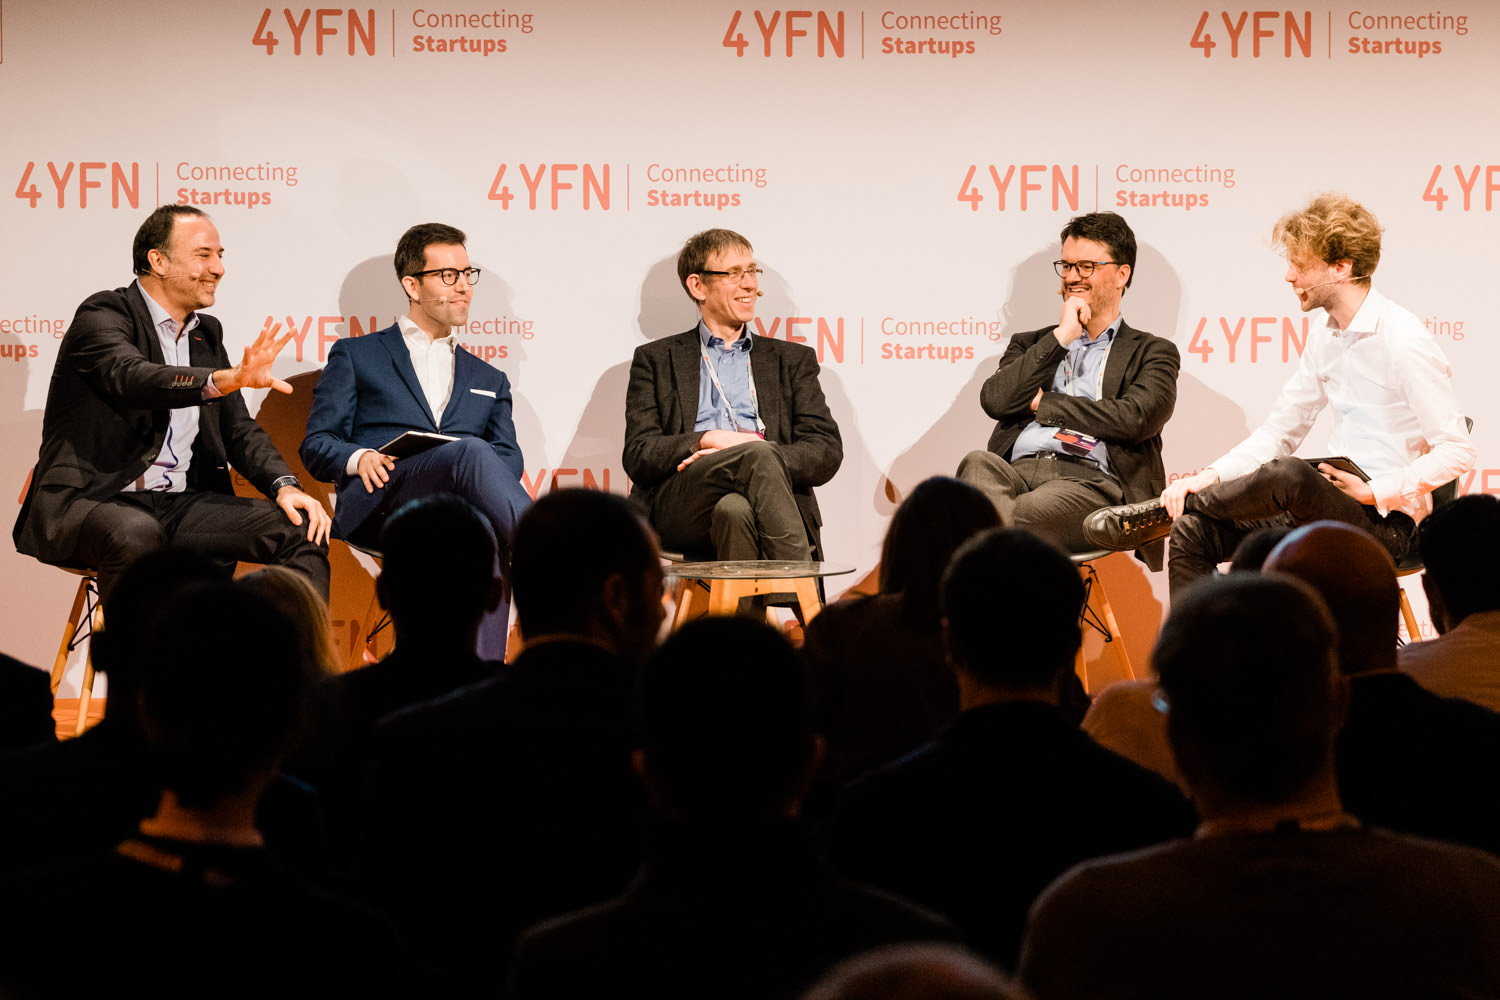 A photograph of Carles Puente, Josemaria Sota, Martin Dietz and Oscar Sala talking at the Agora stage, during the 4YFN event in Barcelona, Spain.